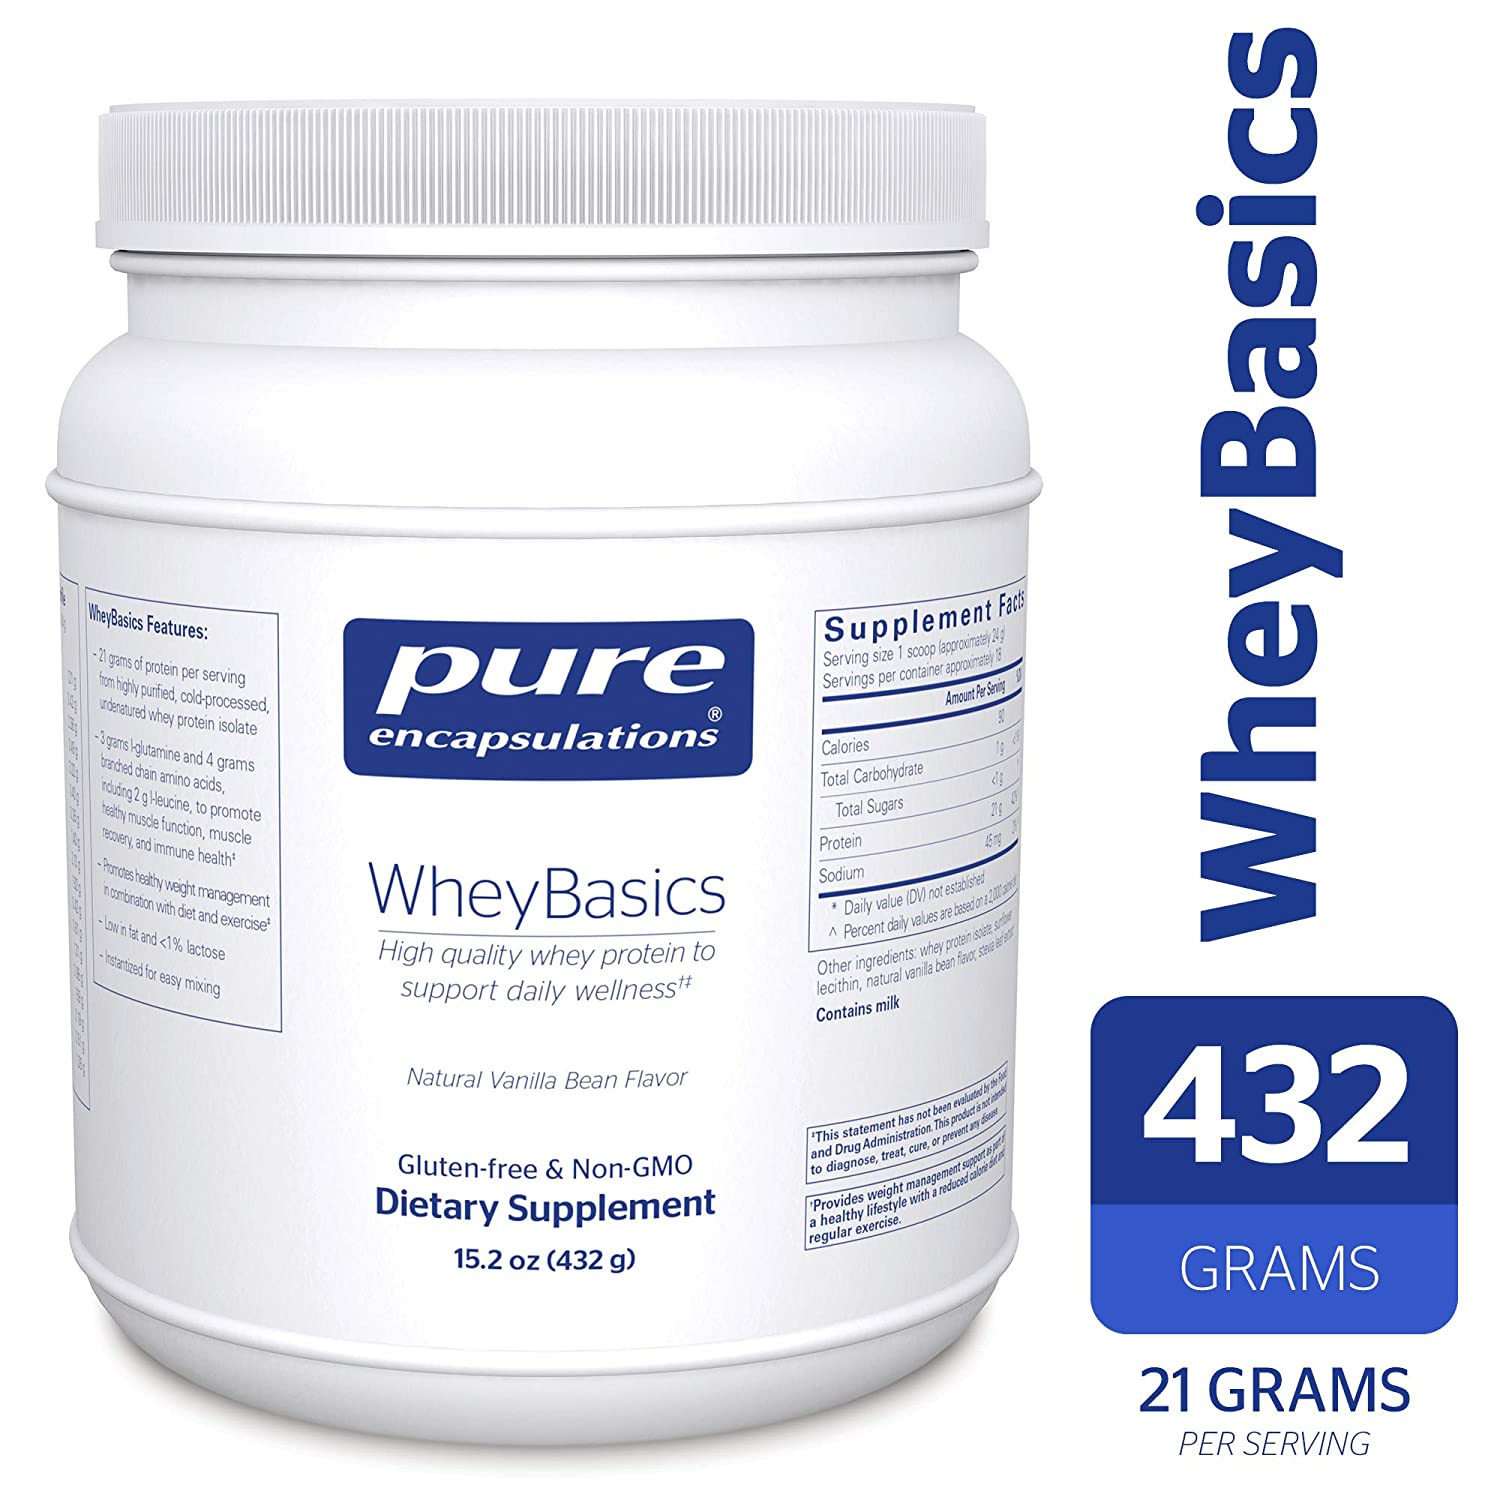 Pure Encapsulations – WheyBasics – Whey Protein Beverage Powder to Support Nutritional Health and Immune Function* – Natural Vanilla Bean Flavor – 432 Grams